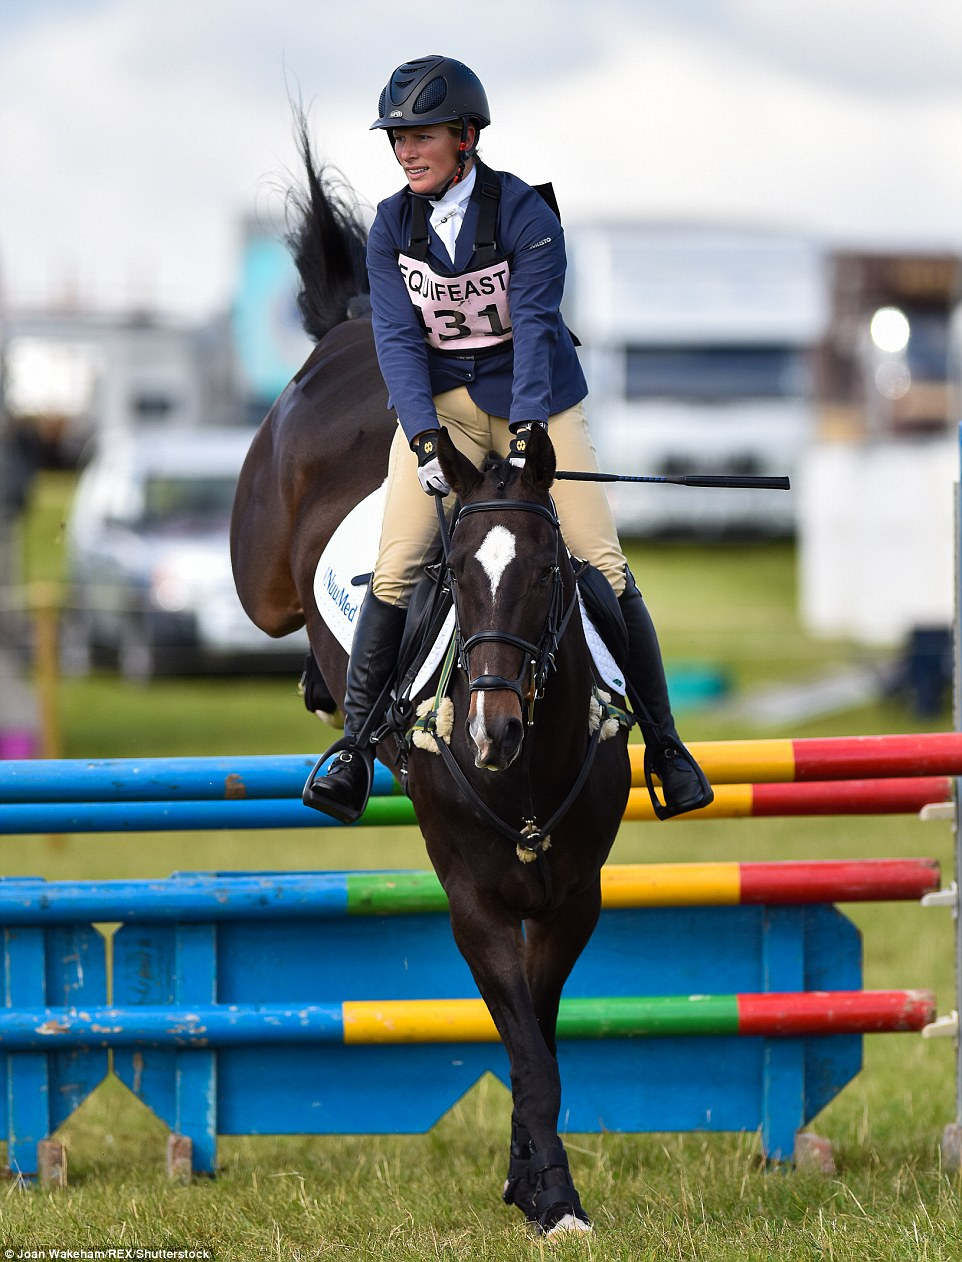 Zara, 35, was competing at Calmsden Horse Trials in Cirencester, Gloucestershire